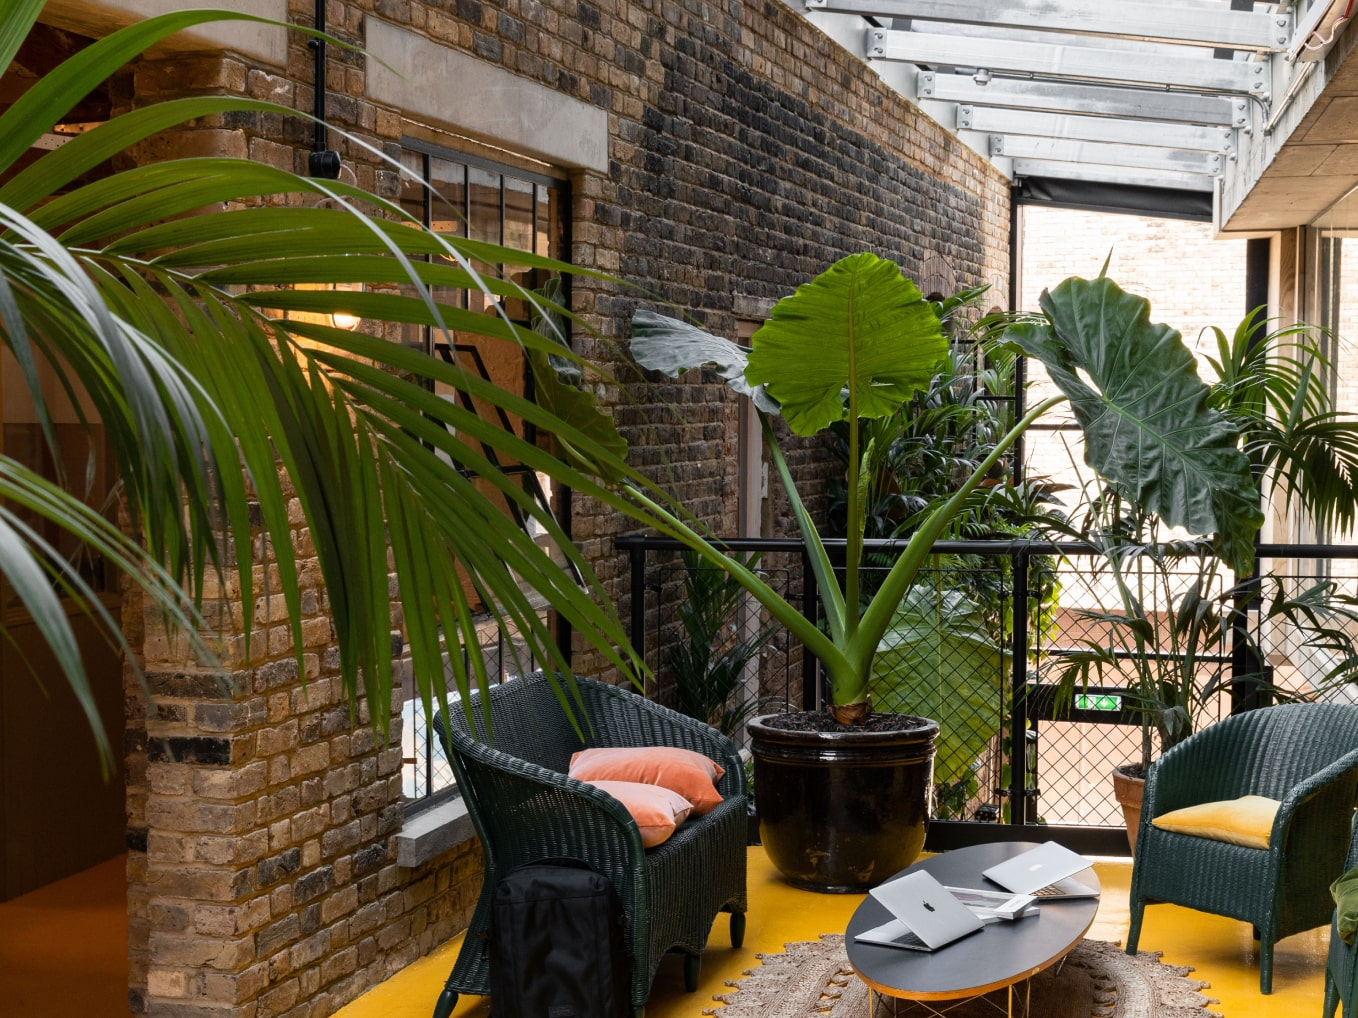 Top floor with plants and glass roof